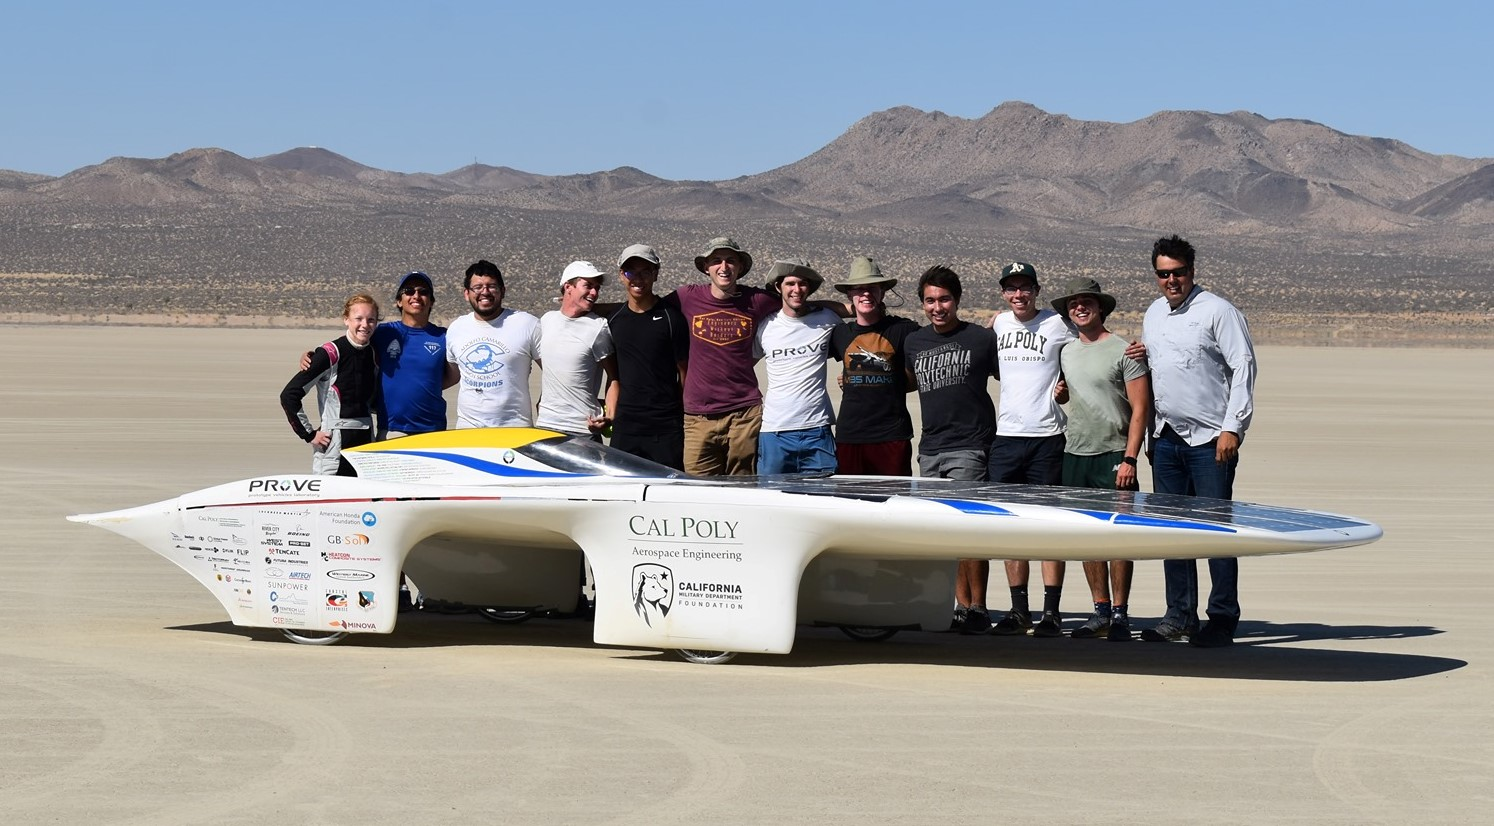 Members of Cal Poly's Prototype Vehicle Laboratory gather around their solar-powered car named Dawn. The team attempted to establish a new world record in August, but reached 51 mph, 5 mph shy of the 2014 record.